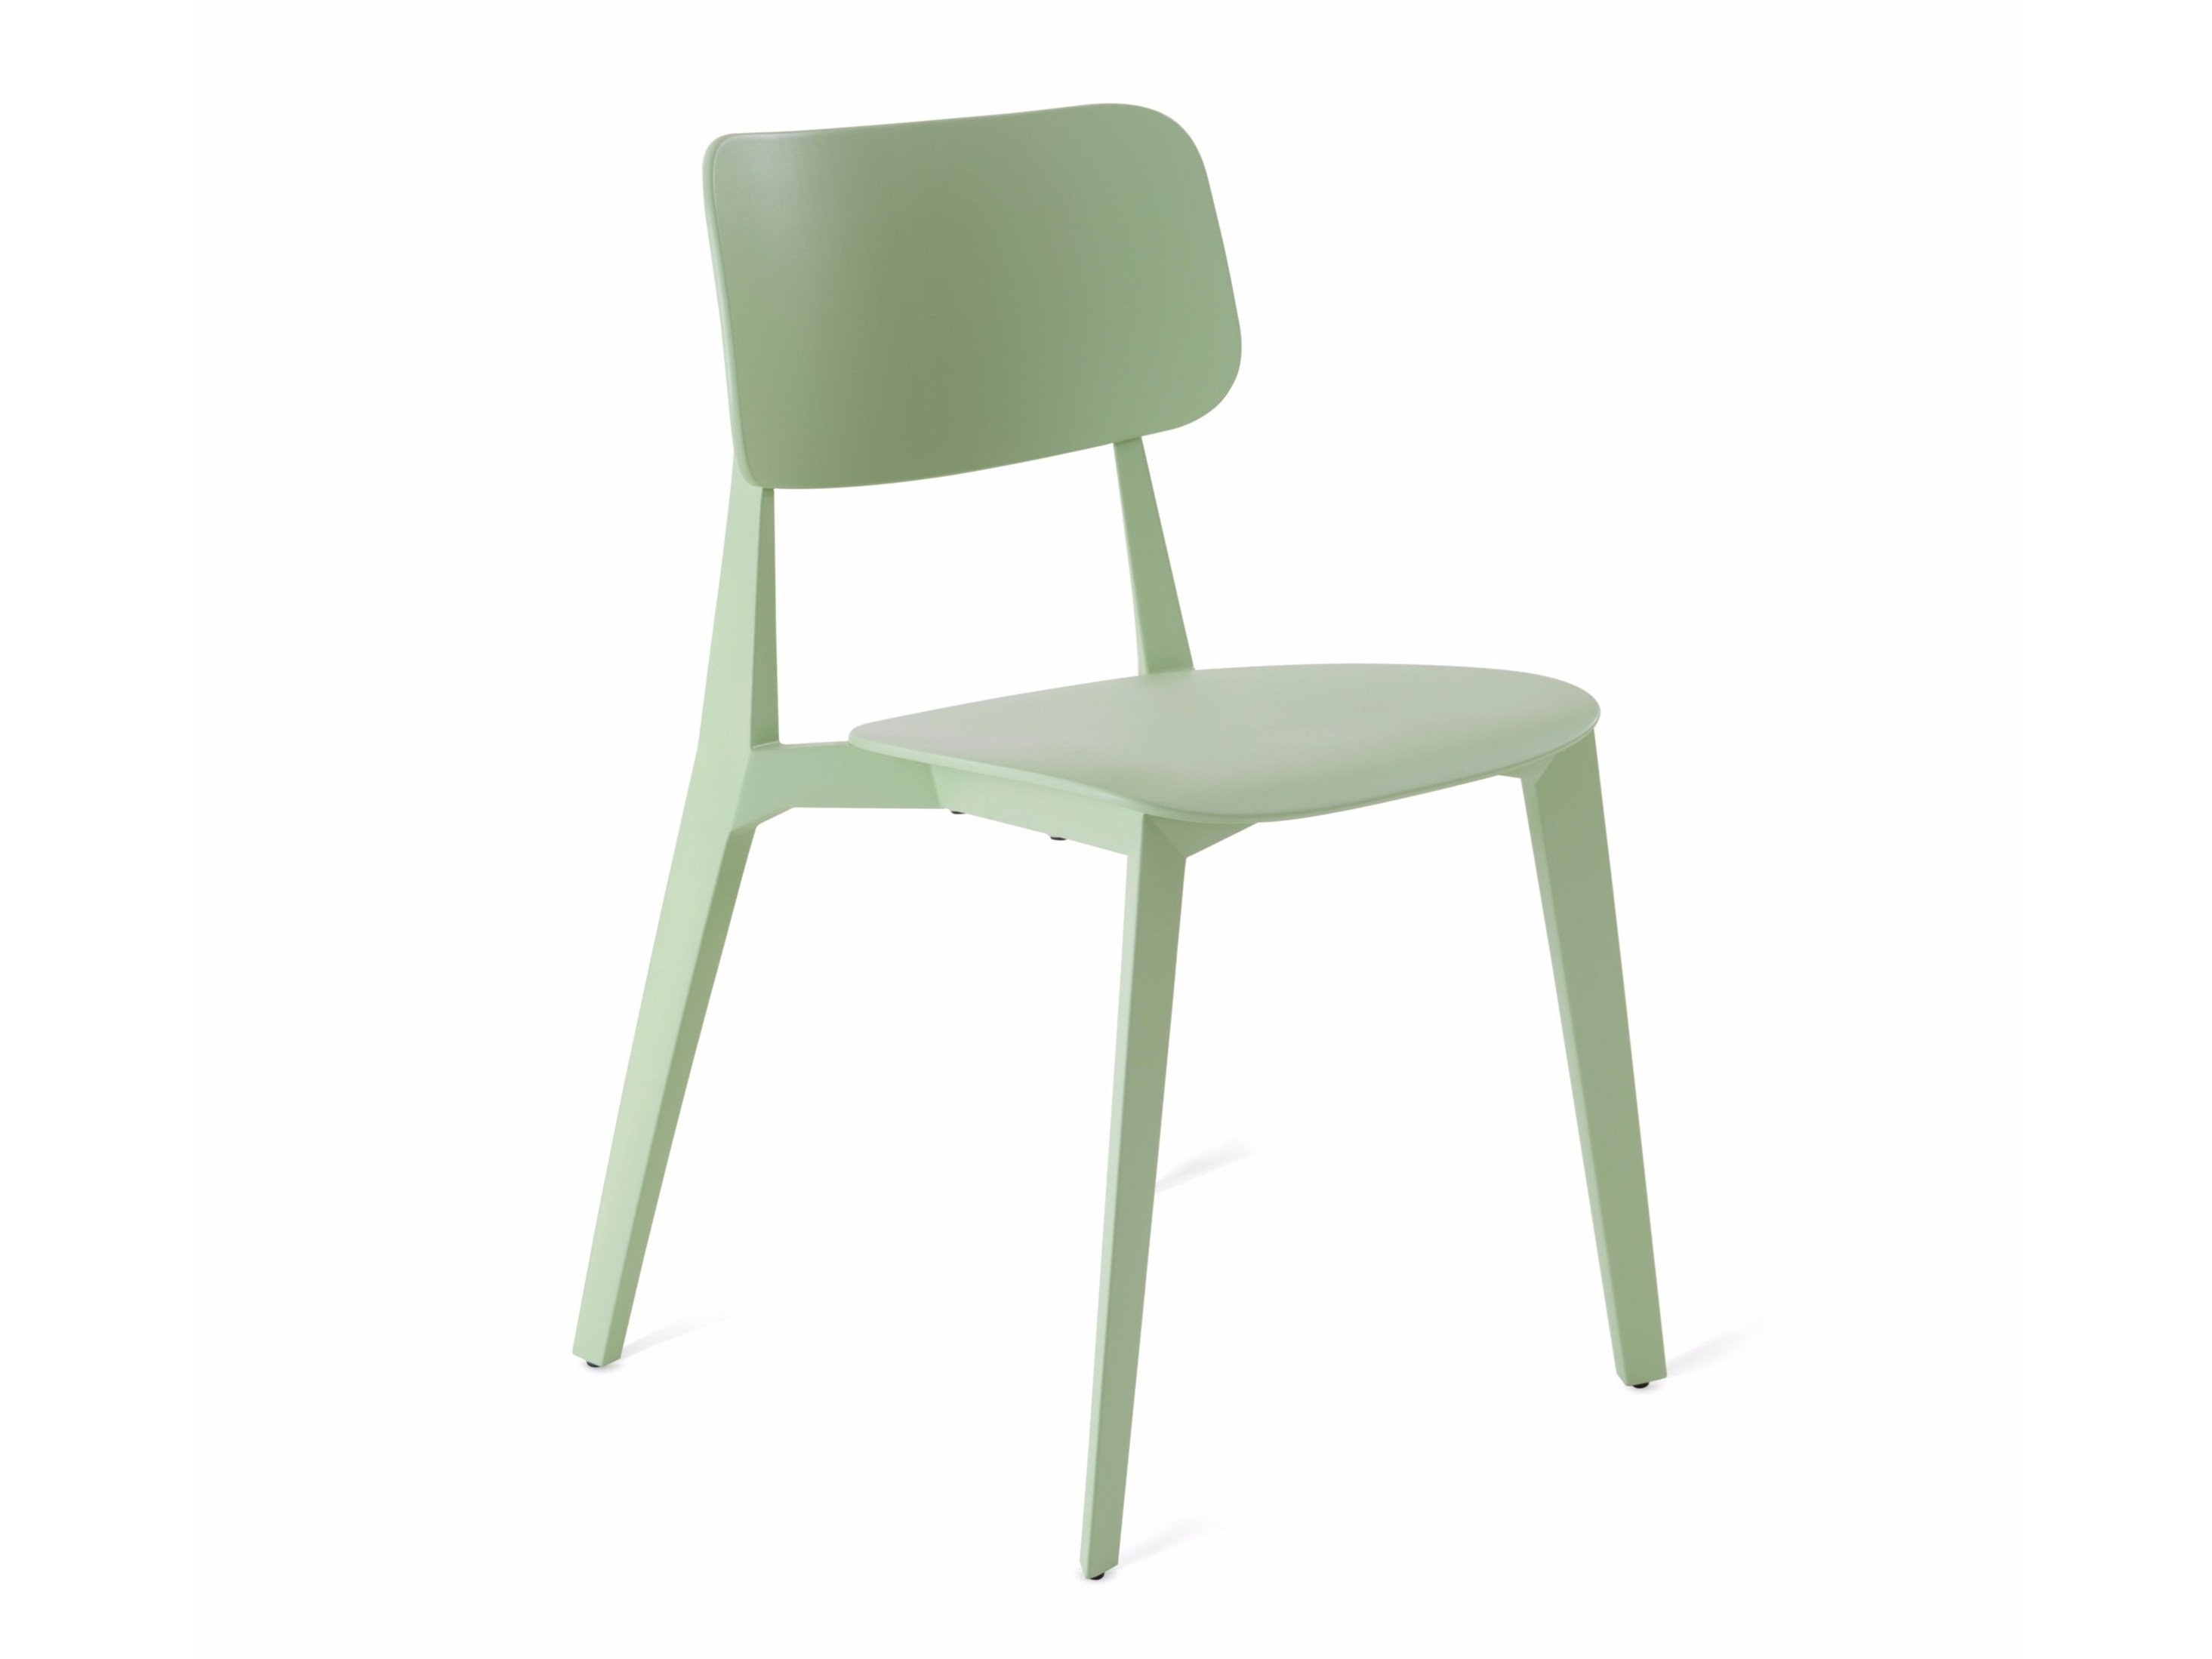 cantilever stackable plastic chair myto by plank design konstantin